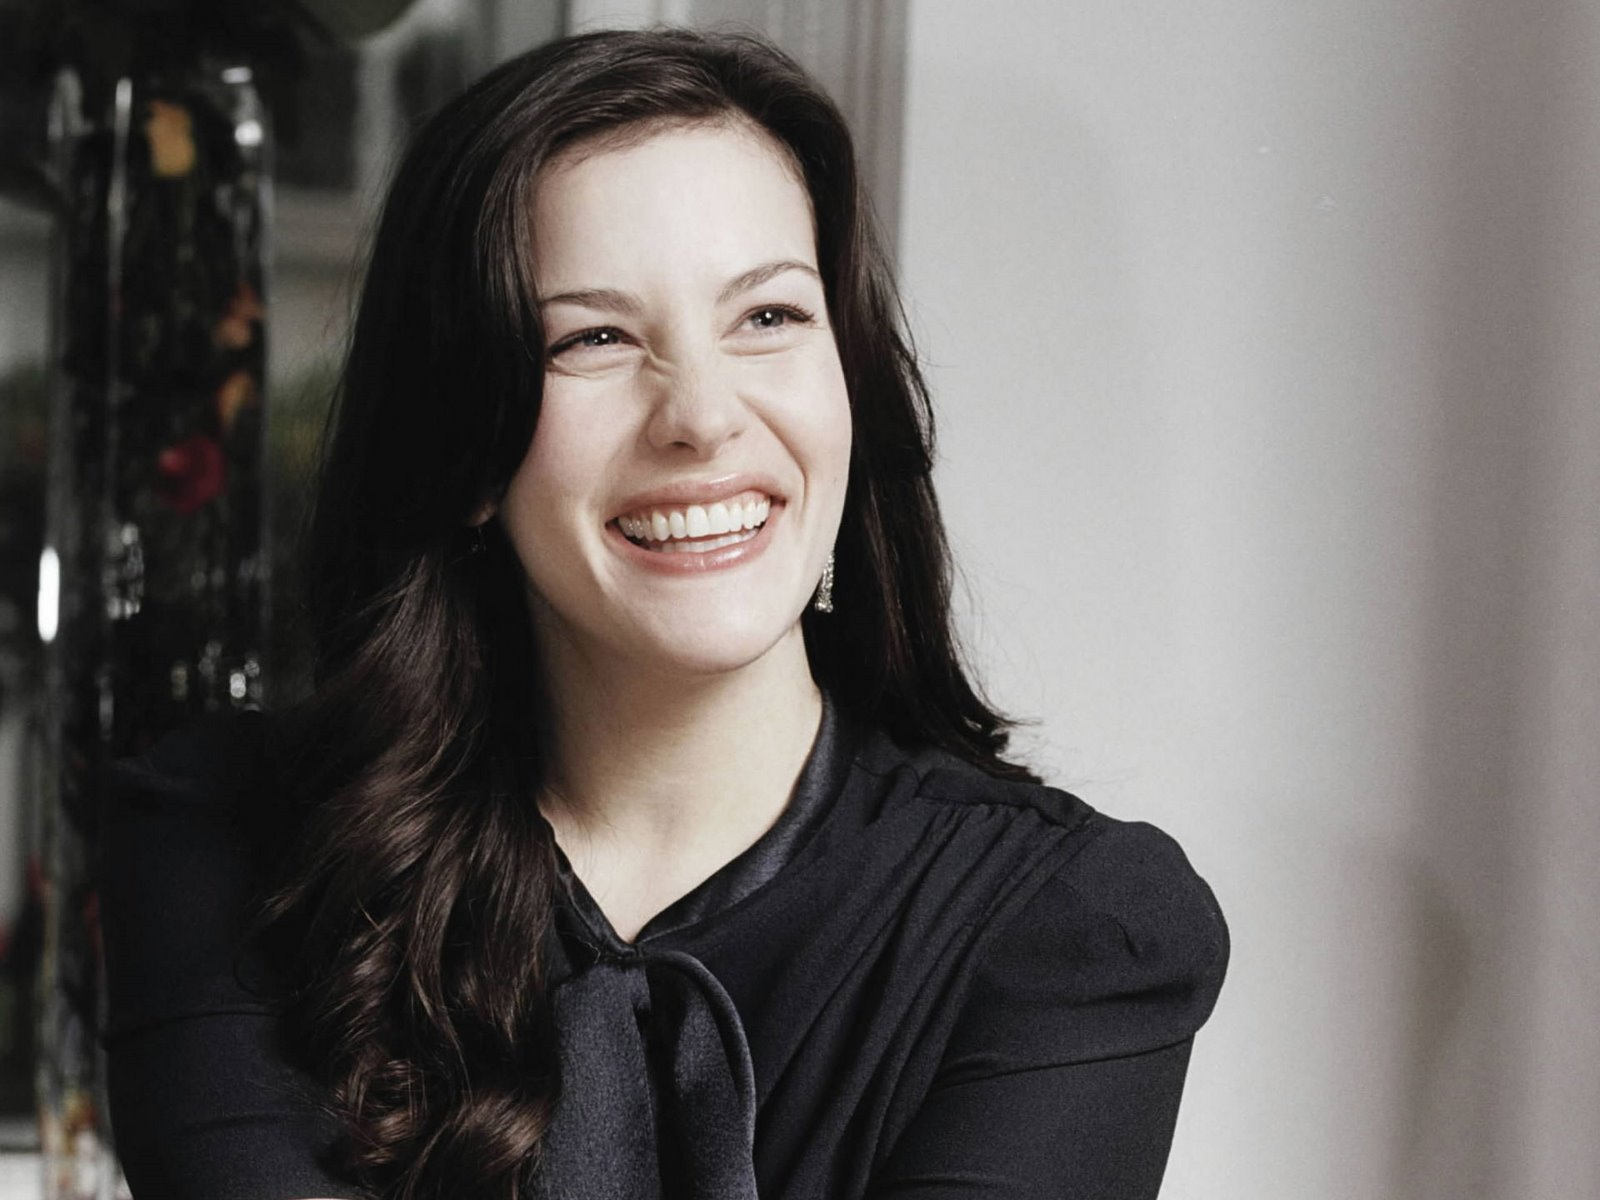 Liv Tyler Hot And Spicy Wallpapers Bikinisexyphotoshoot -7627